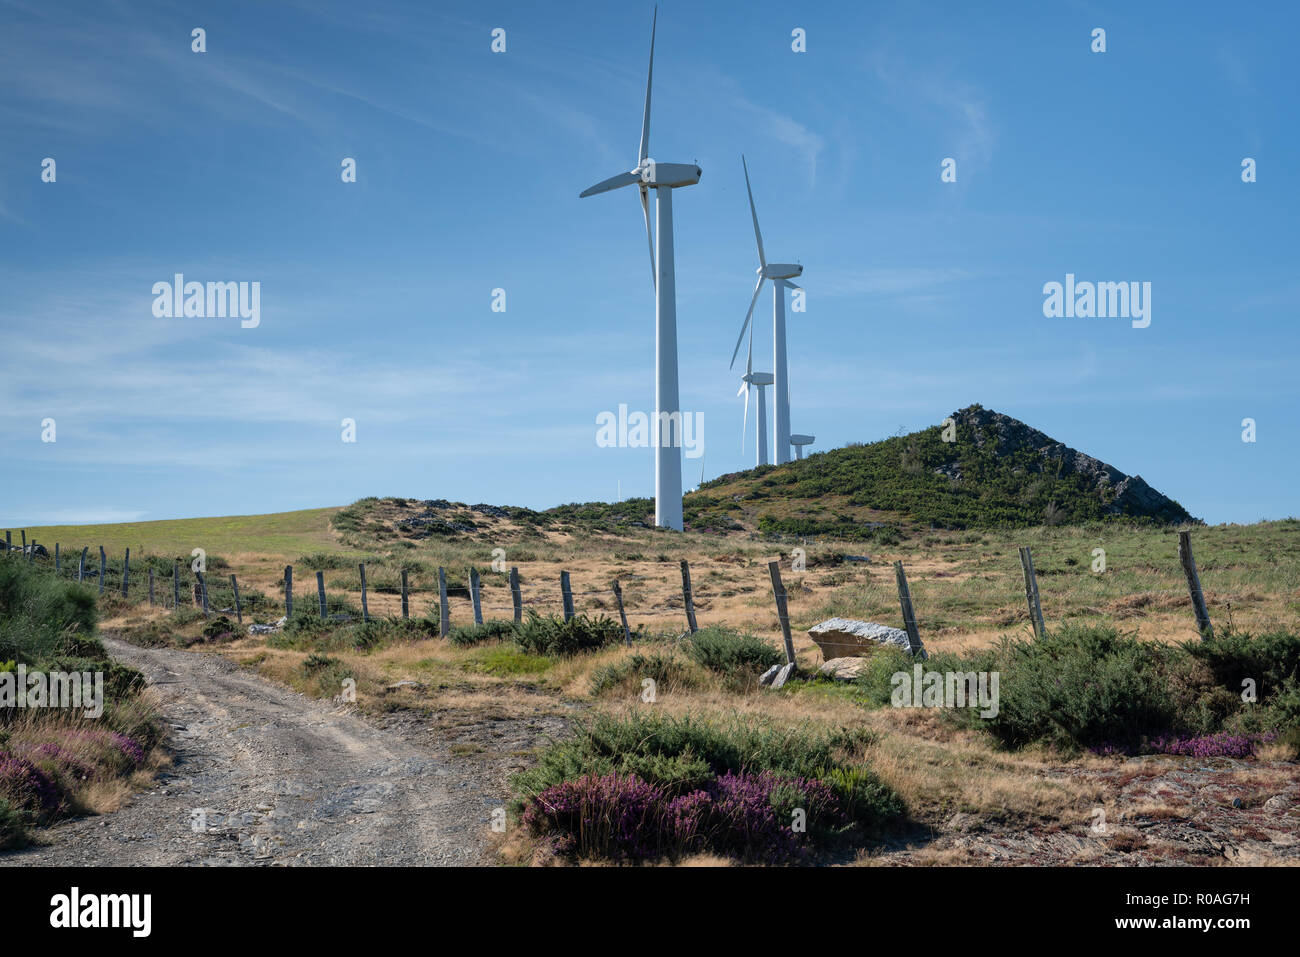 Green Energy, wind farm on Mount Montouto, Galicia, Spain - Stock Image